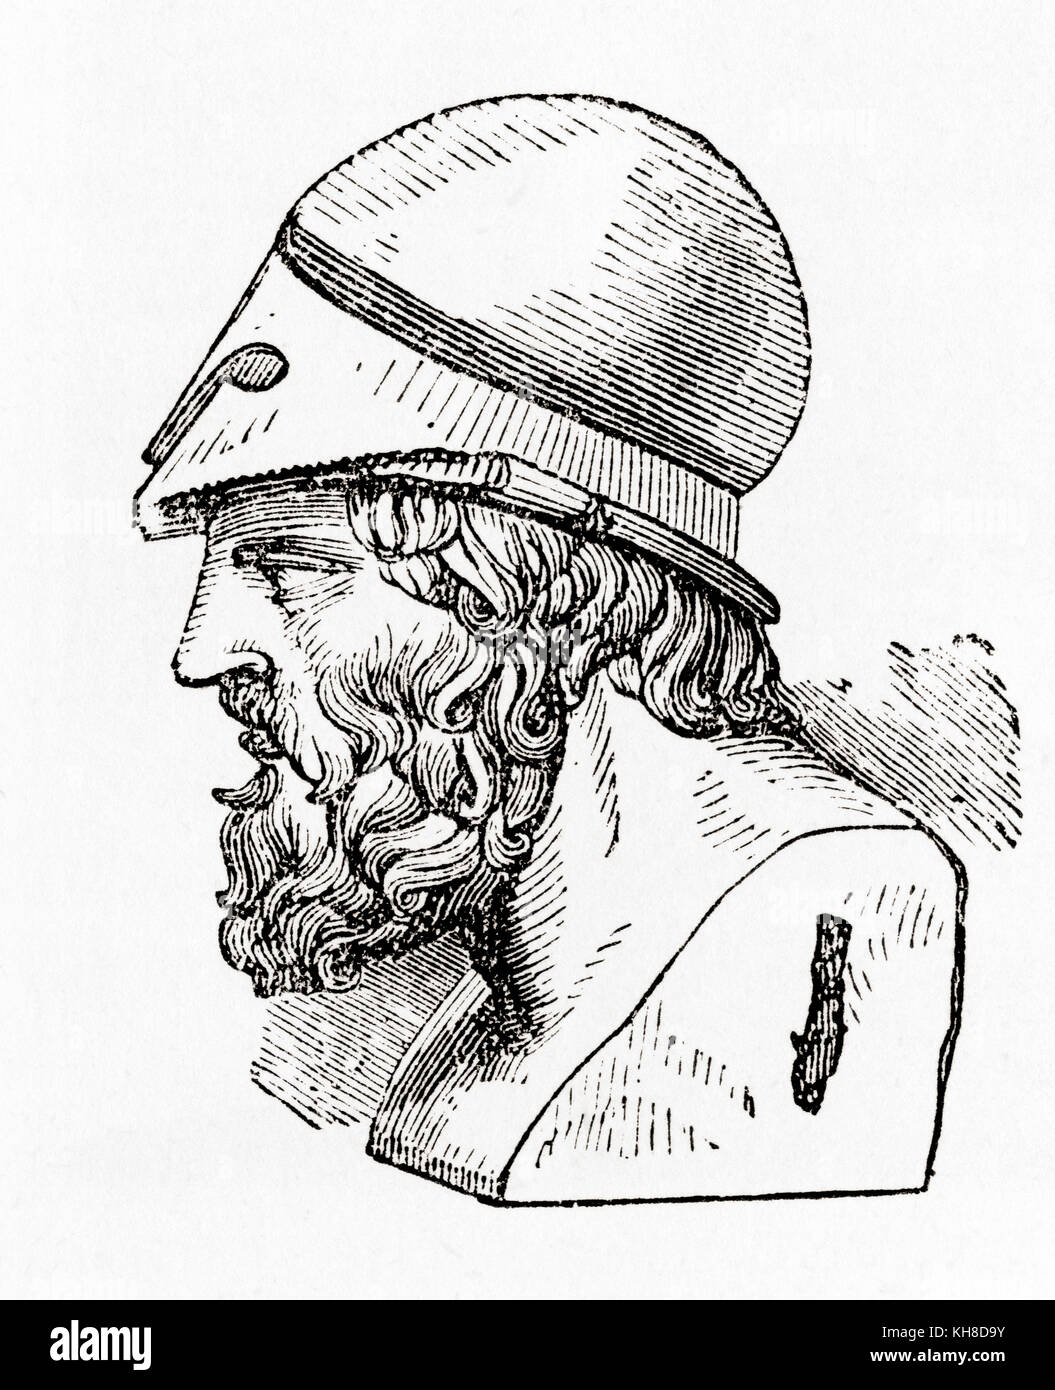 Aristides, 530 BC – 468 BC.  Ancient Athenian statesman. From Ward and Lock's Illustrated History of the World, - Stock Image